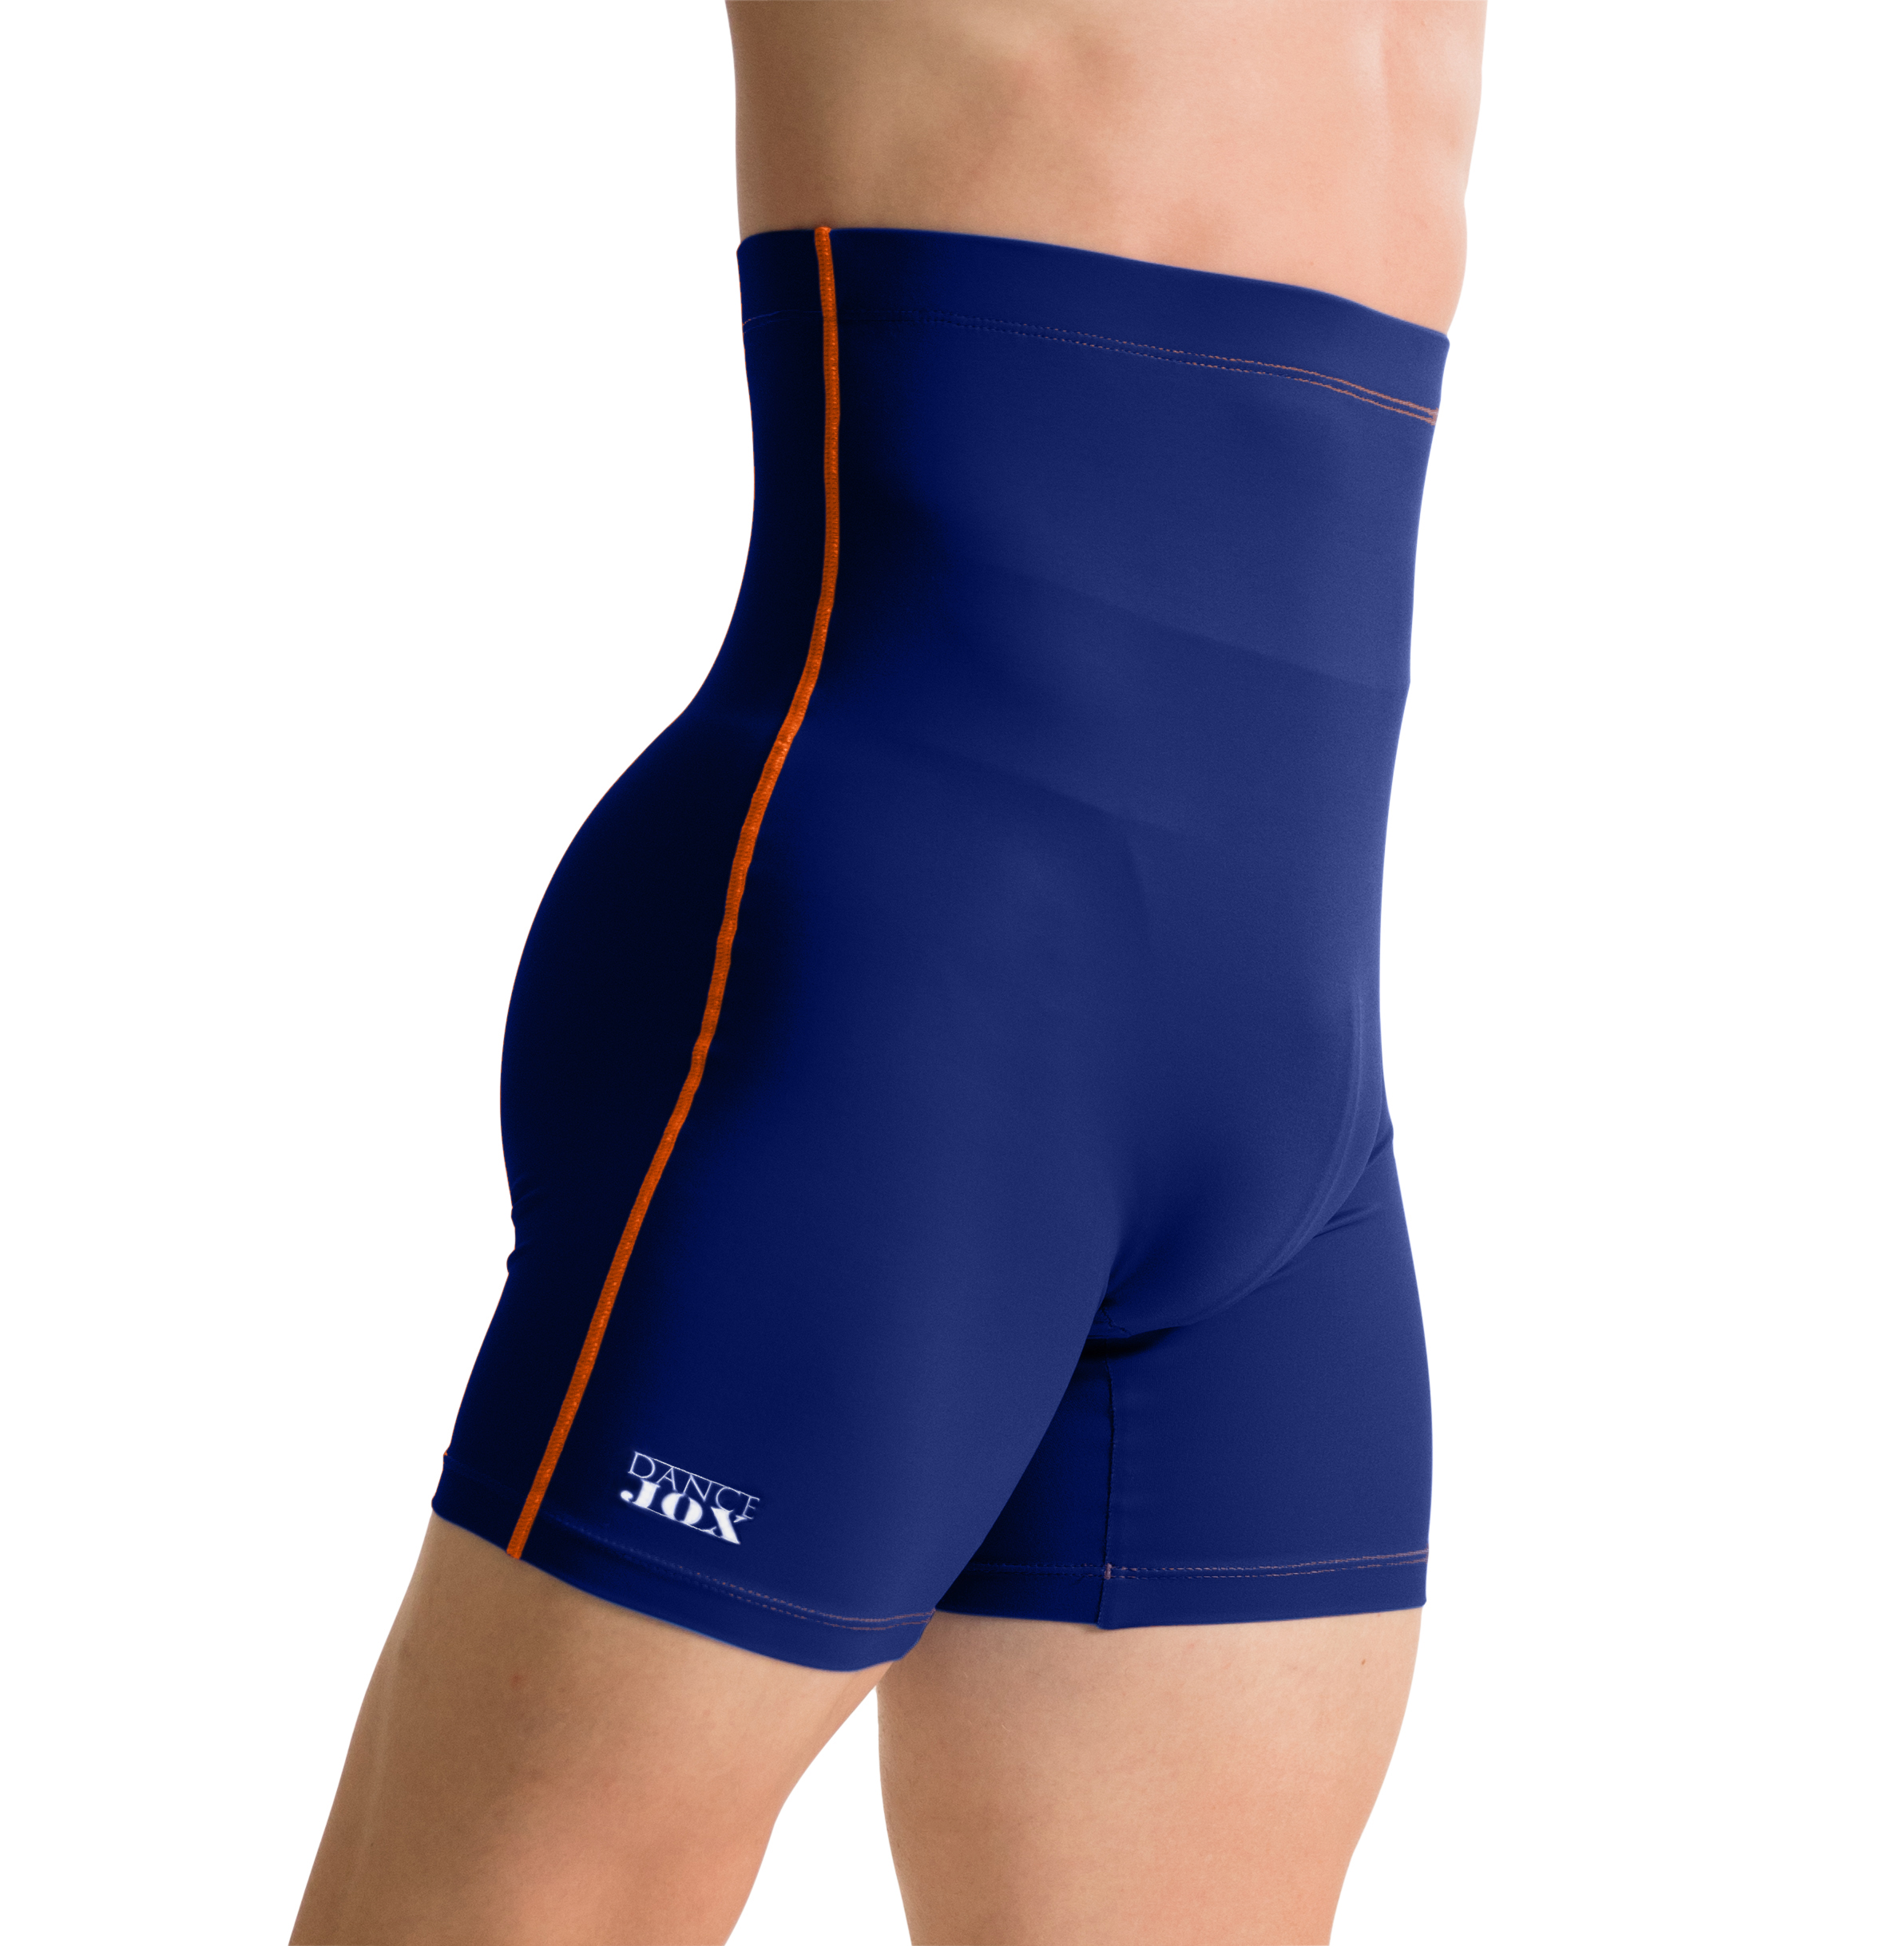 2fcd99023492 ACTIVE SHORTS – ROYAL. $27.00. High waisted shorts created for dancers ...